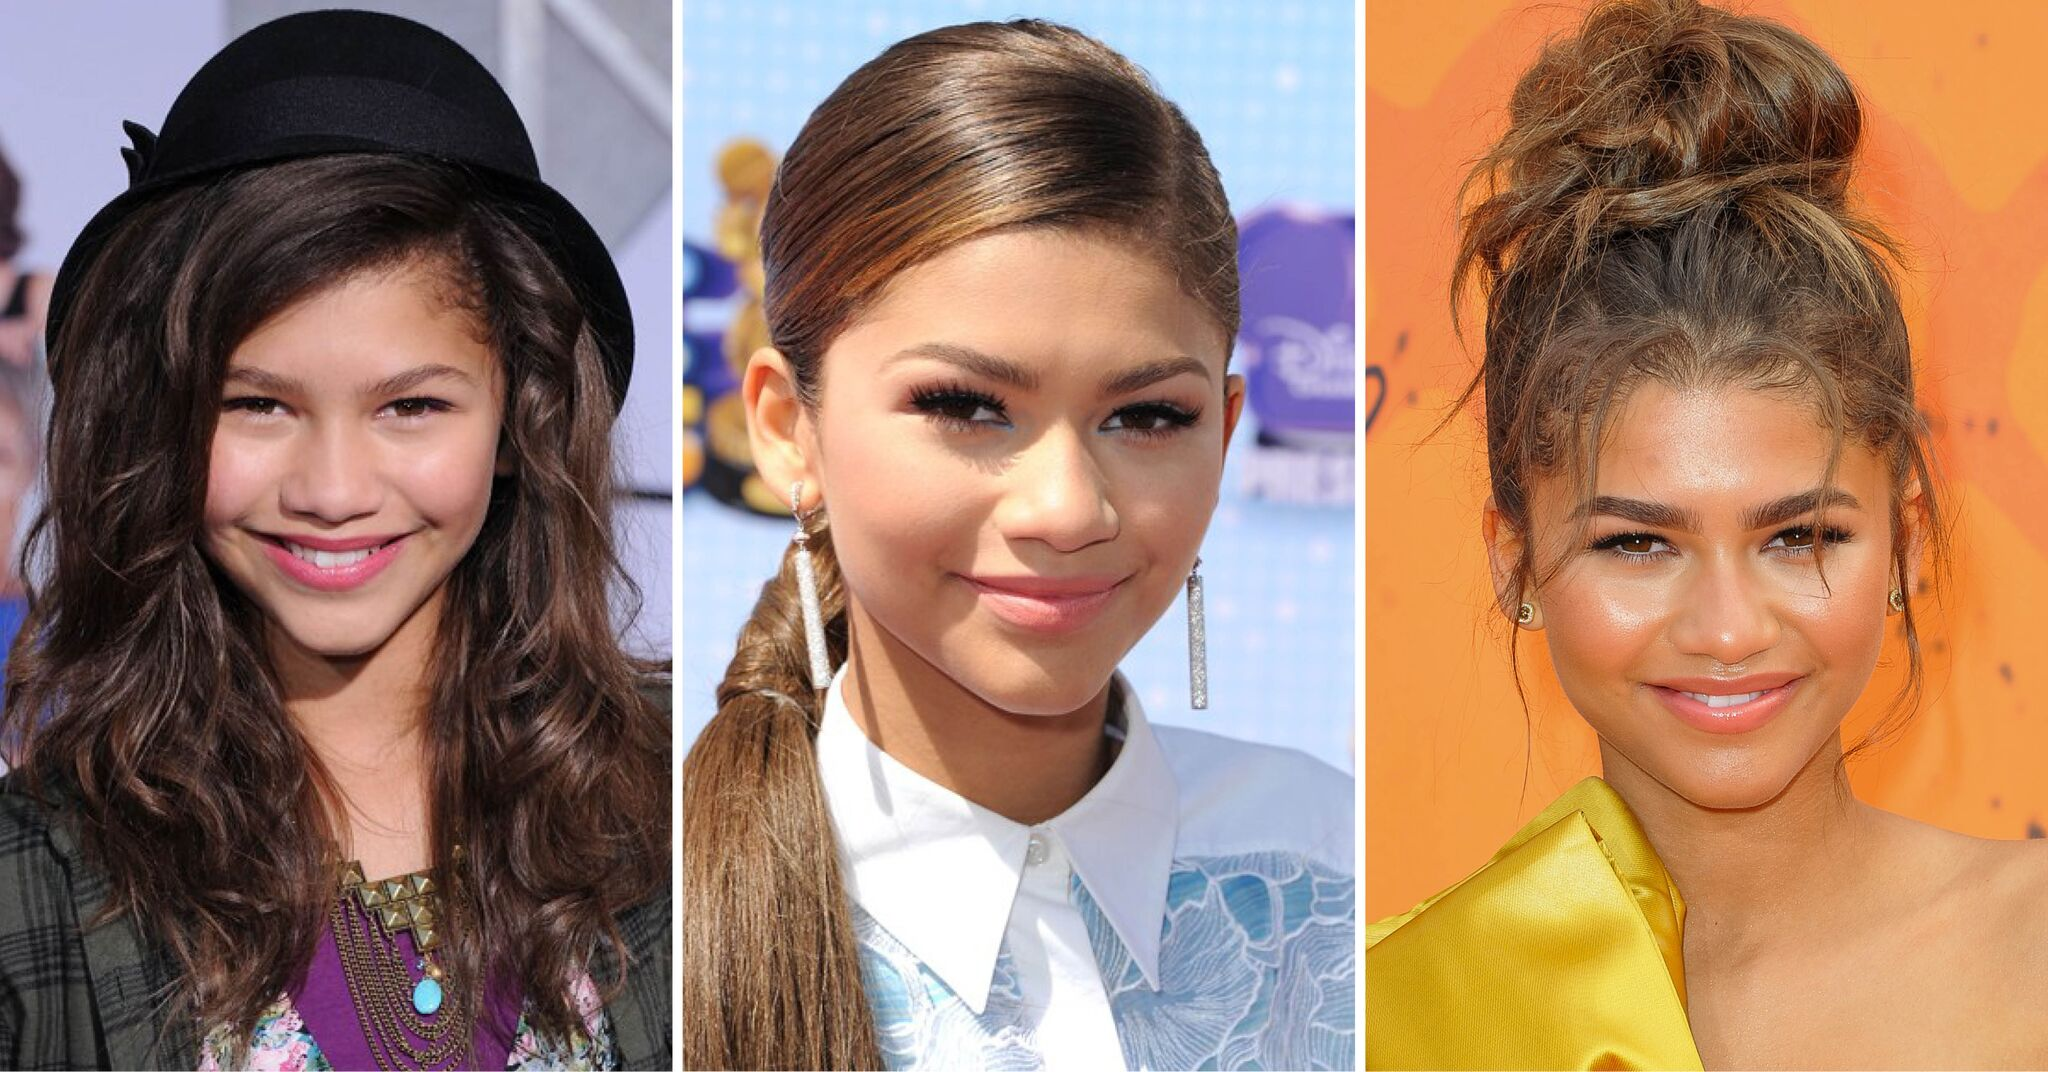 The beauty evolution of Zendaya Coleman: From adorable child star to red carpet hero https://t.co/f4OTsRuiRE https://t.co/V0Q02lR41N